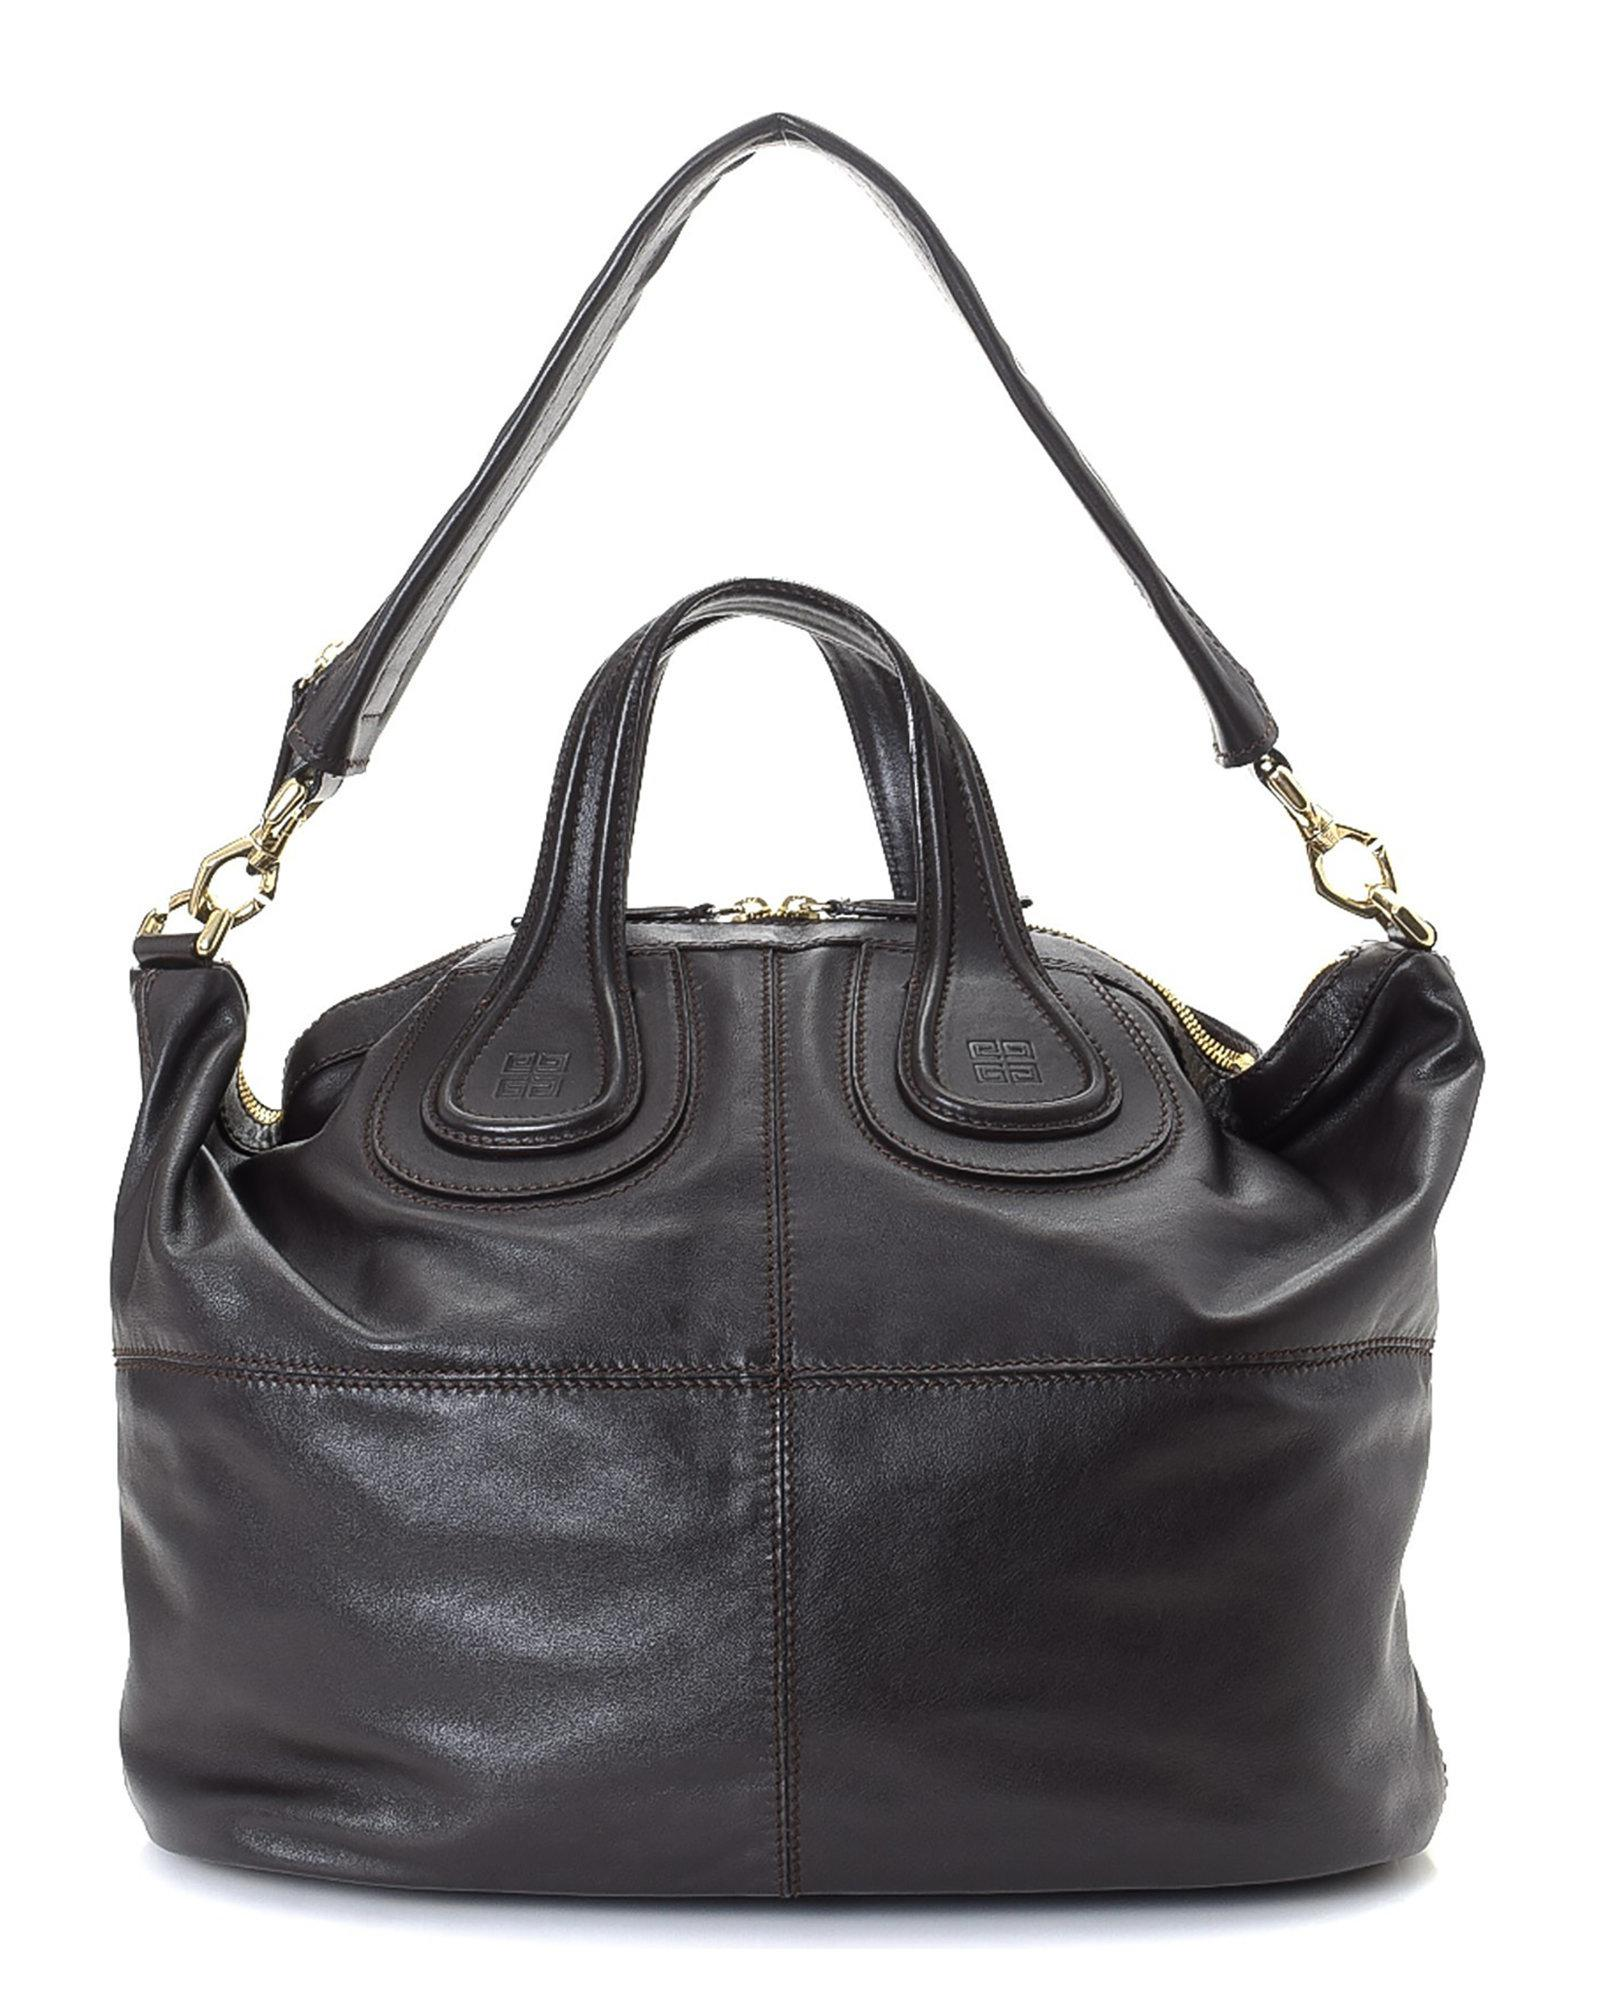 Lyst - Givenchy Nightingale Two Way Leather Shoulder Bag - Vintage ... 134bb80438db1